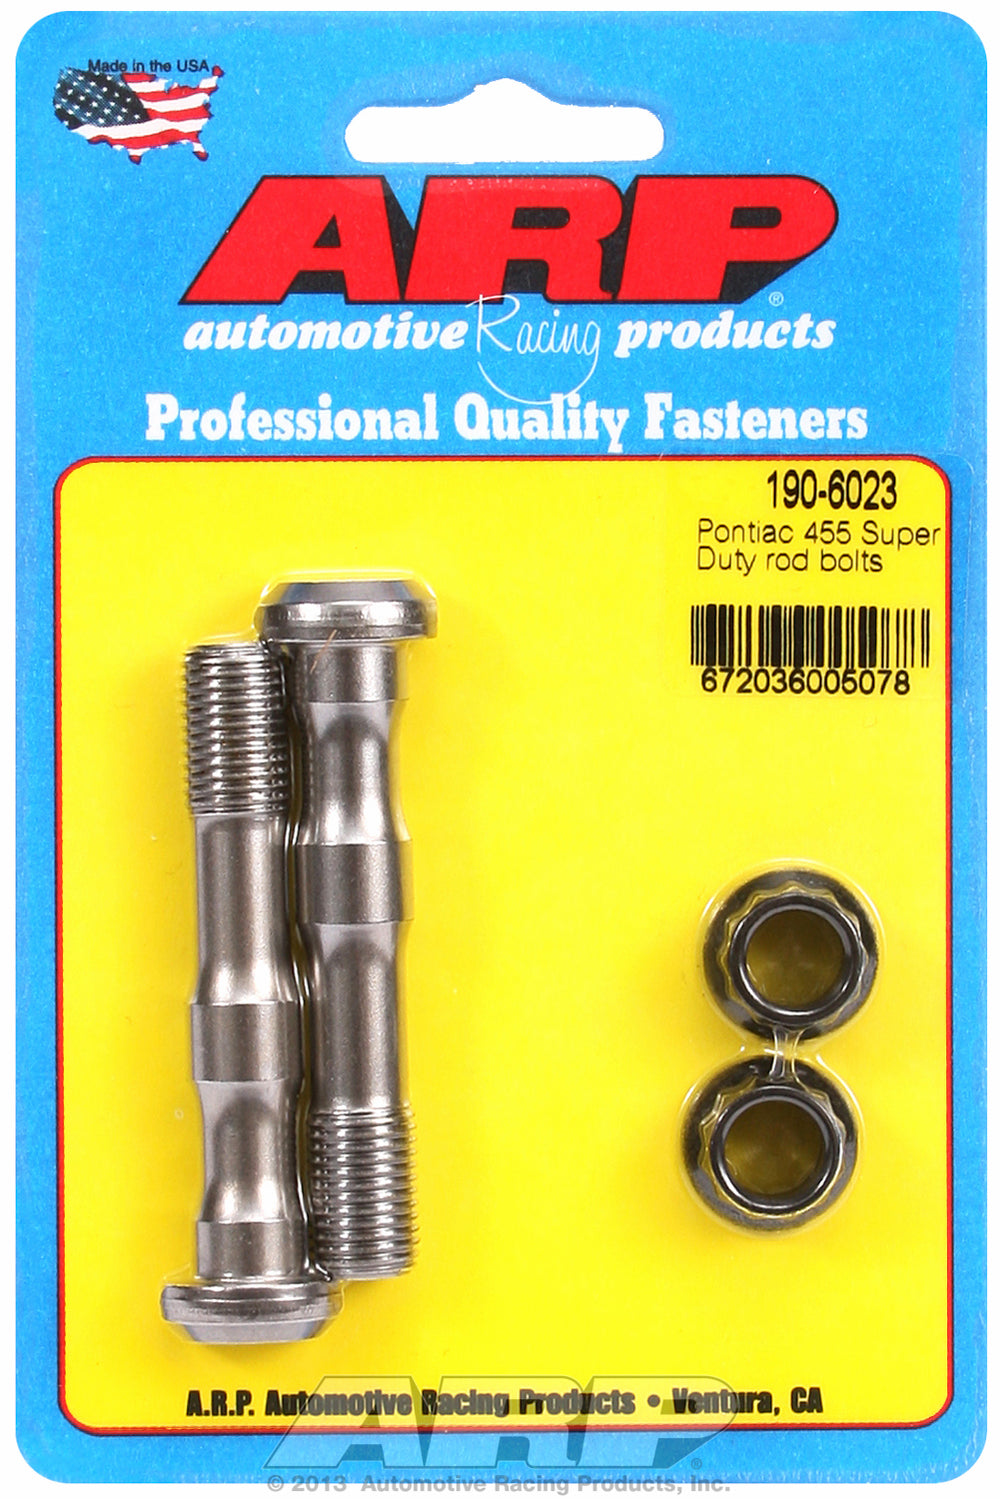 Hi-Perf 8740 (2-pc) Rod Bolt Kit for Pontiac 455 Super Duty 7/16˝